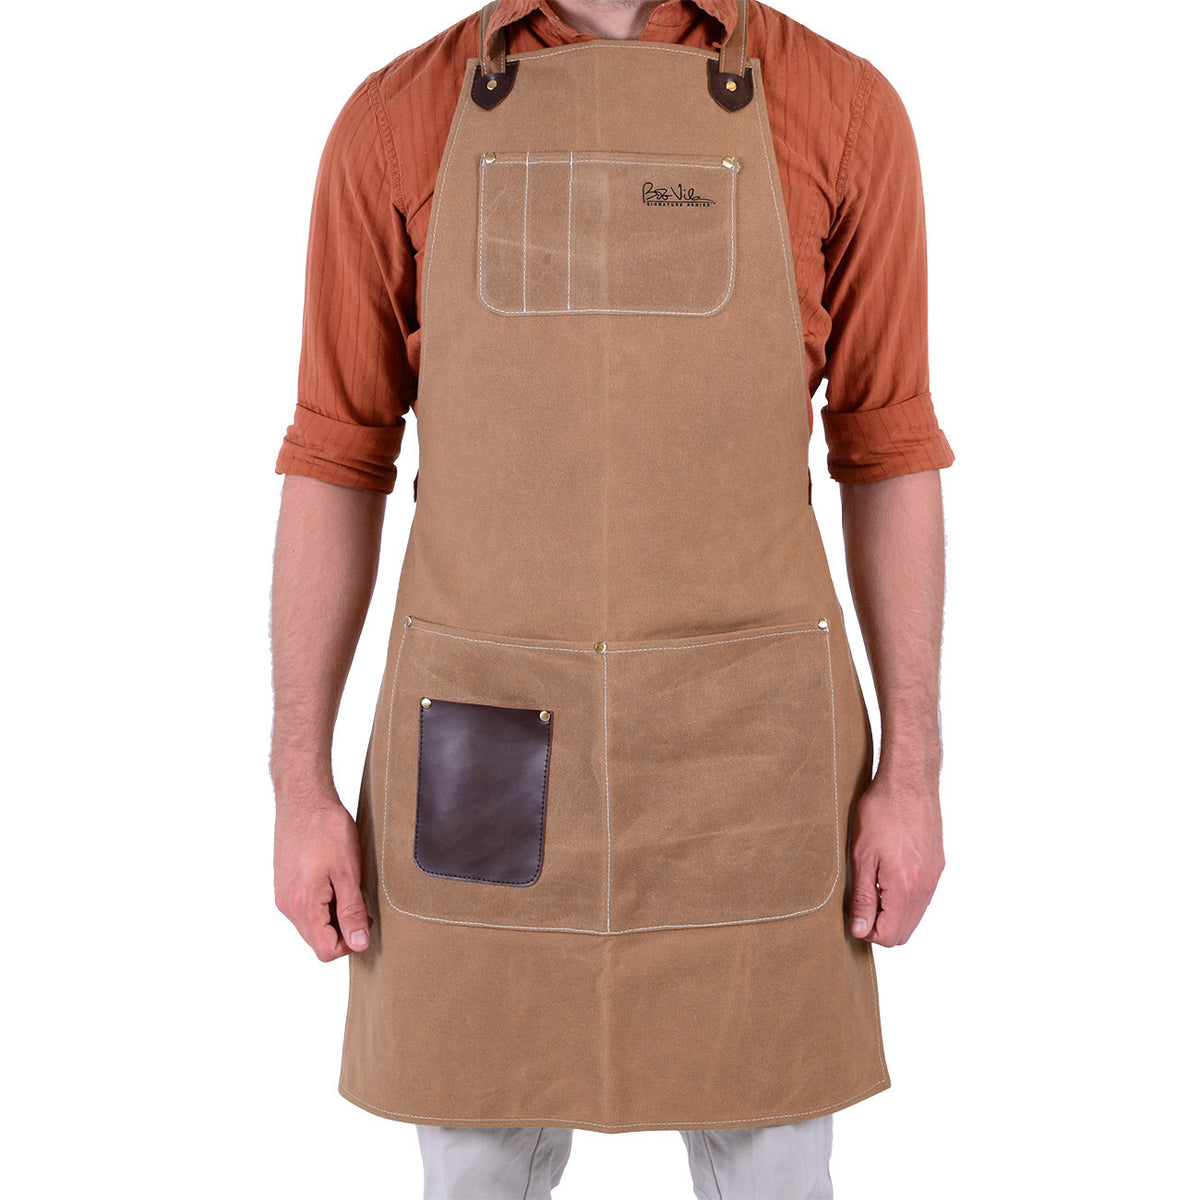 Signature Series - Workman's Apron